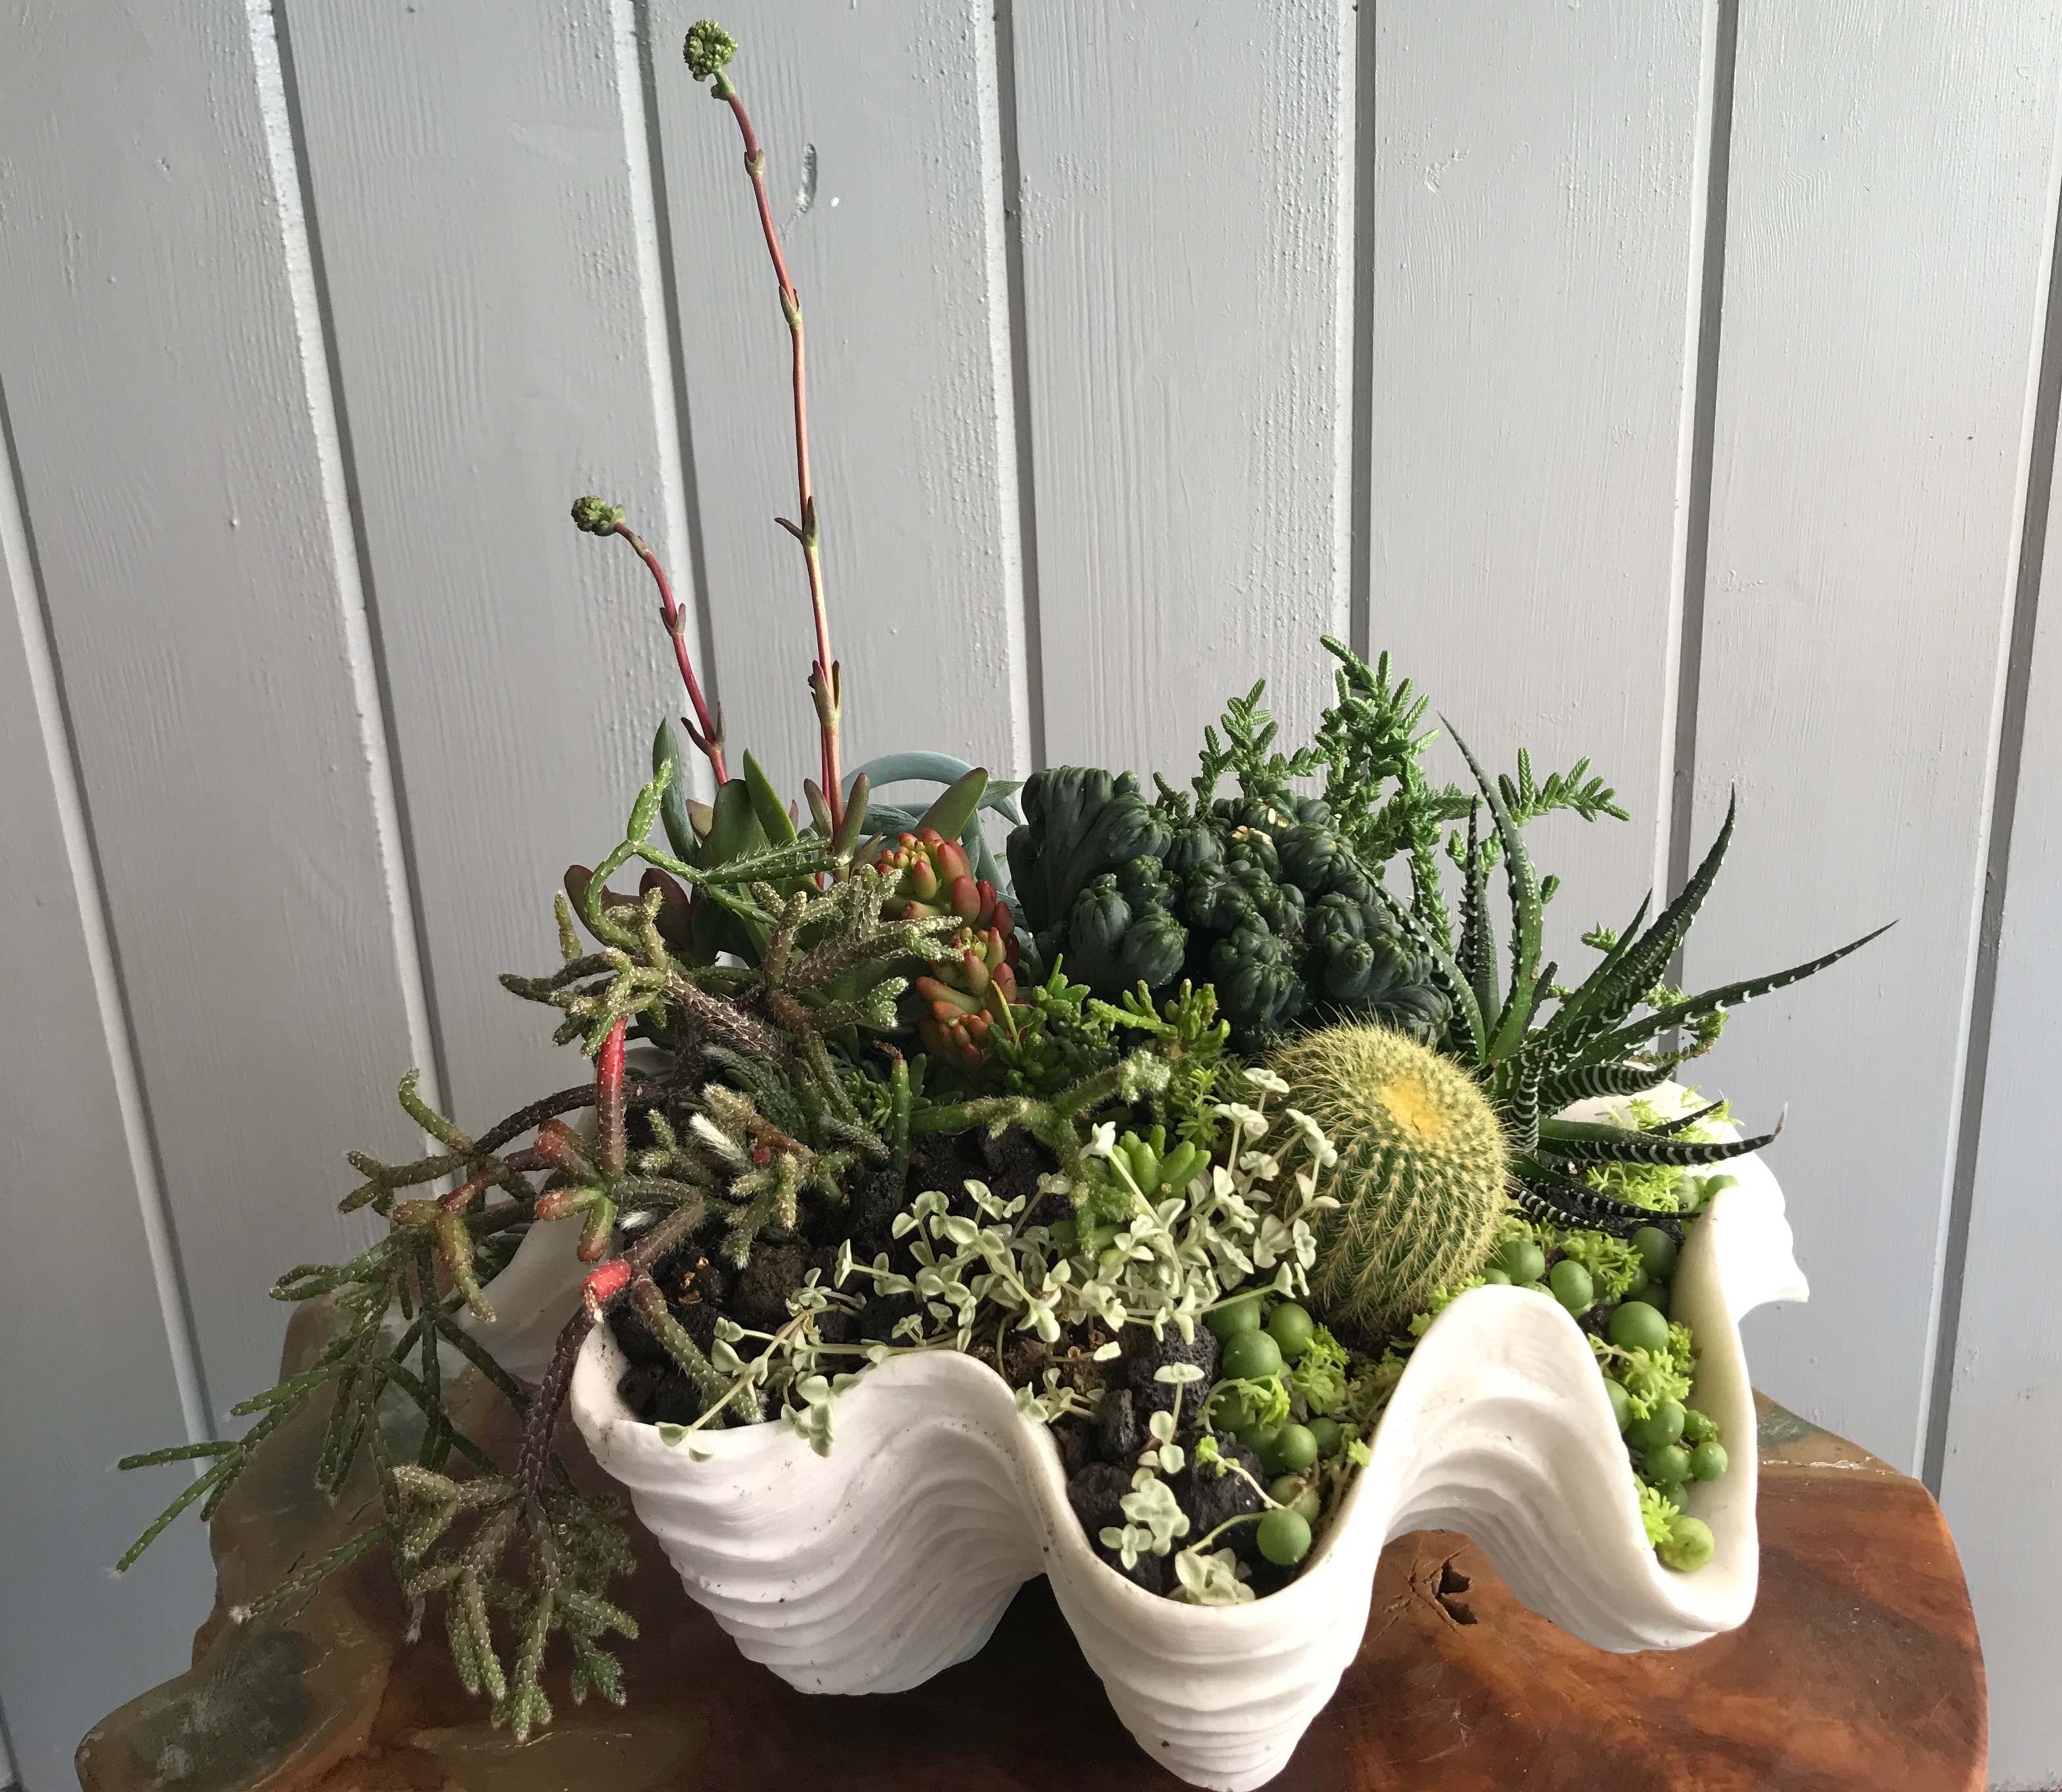 Giant Clam Shell Container Garden